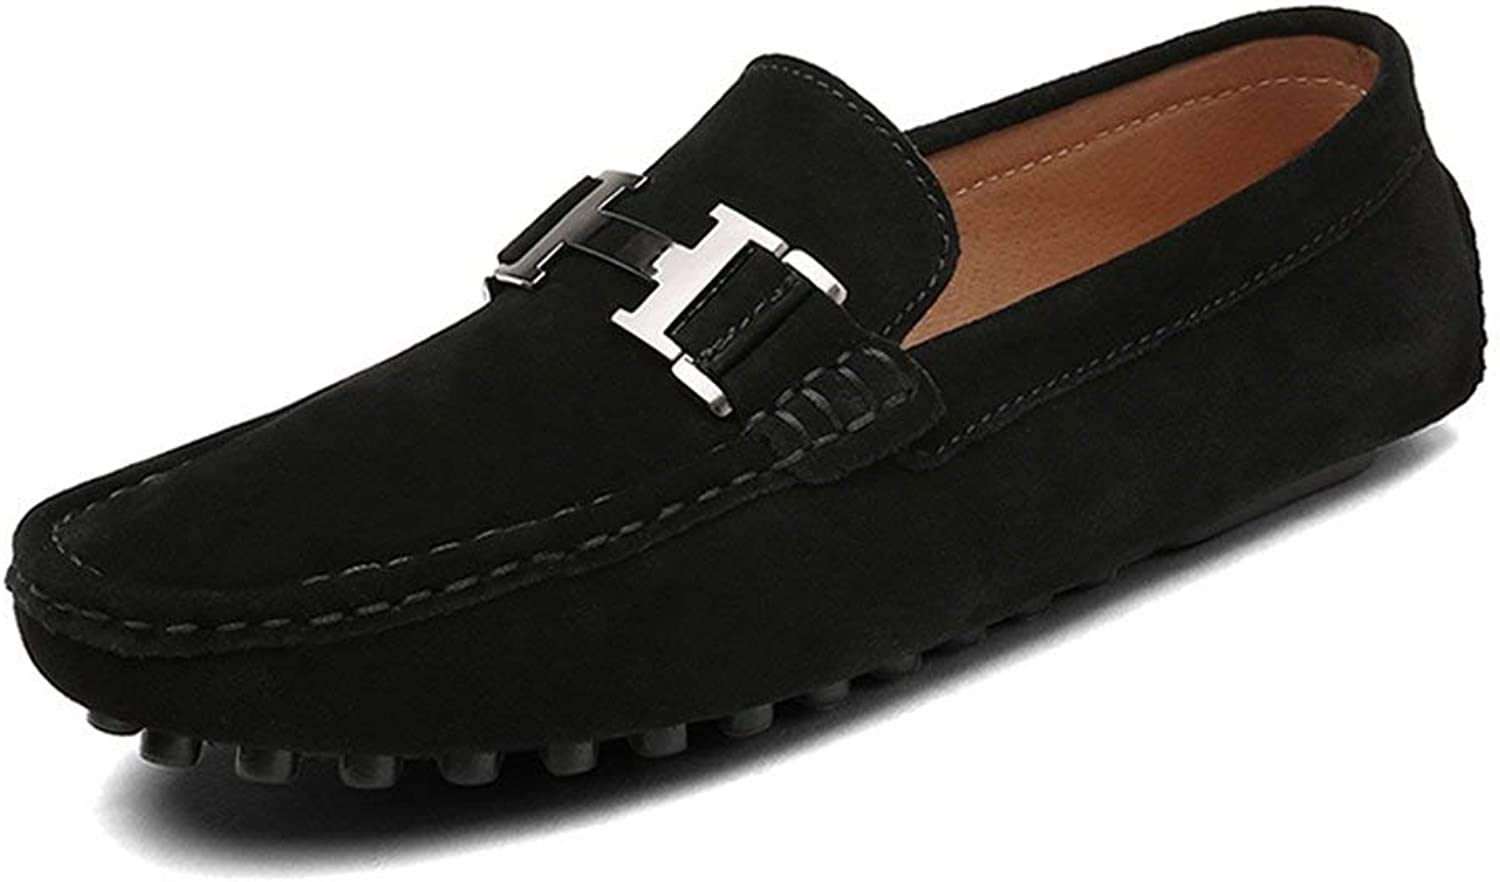 ZHRUI Men Casual shoes Cow Suede Leather Loafers Leather Driving Moccasins Slip on shoes Men Comfortable and Breathable shoes (color   Black5211, Size   5.5=39 EU)